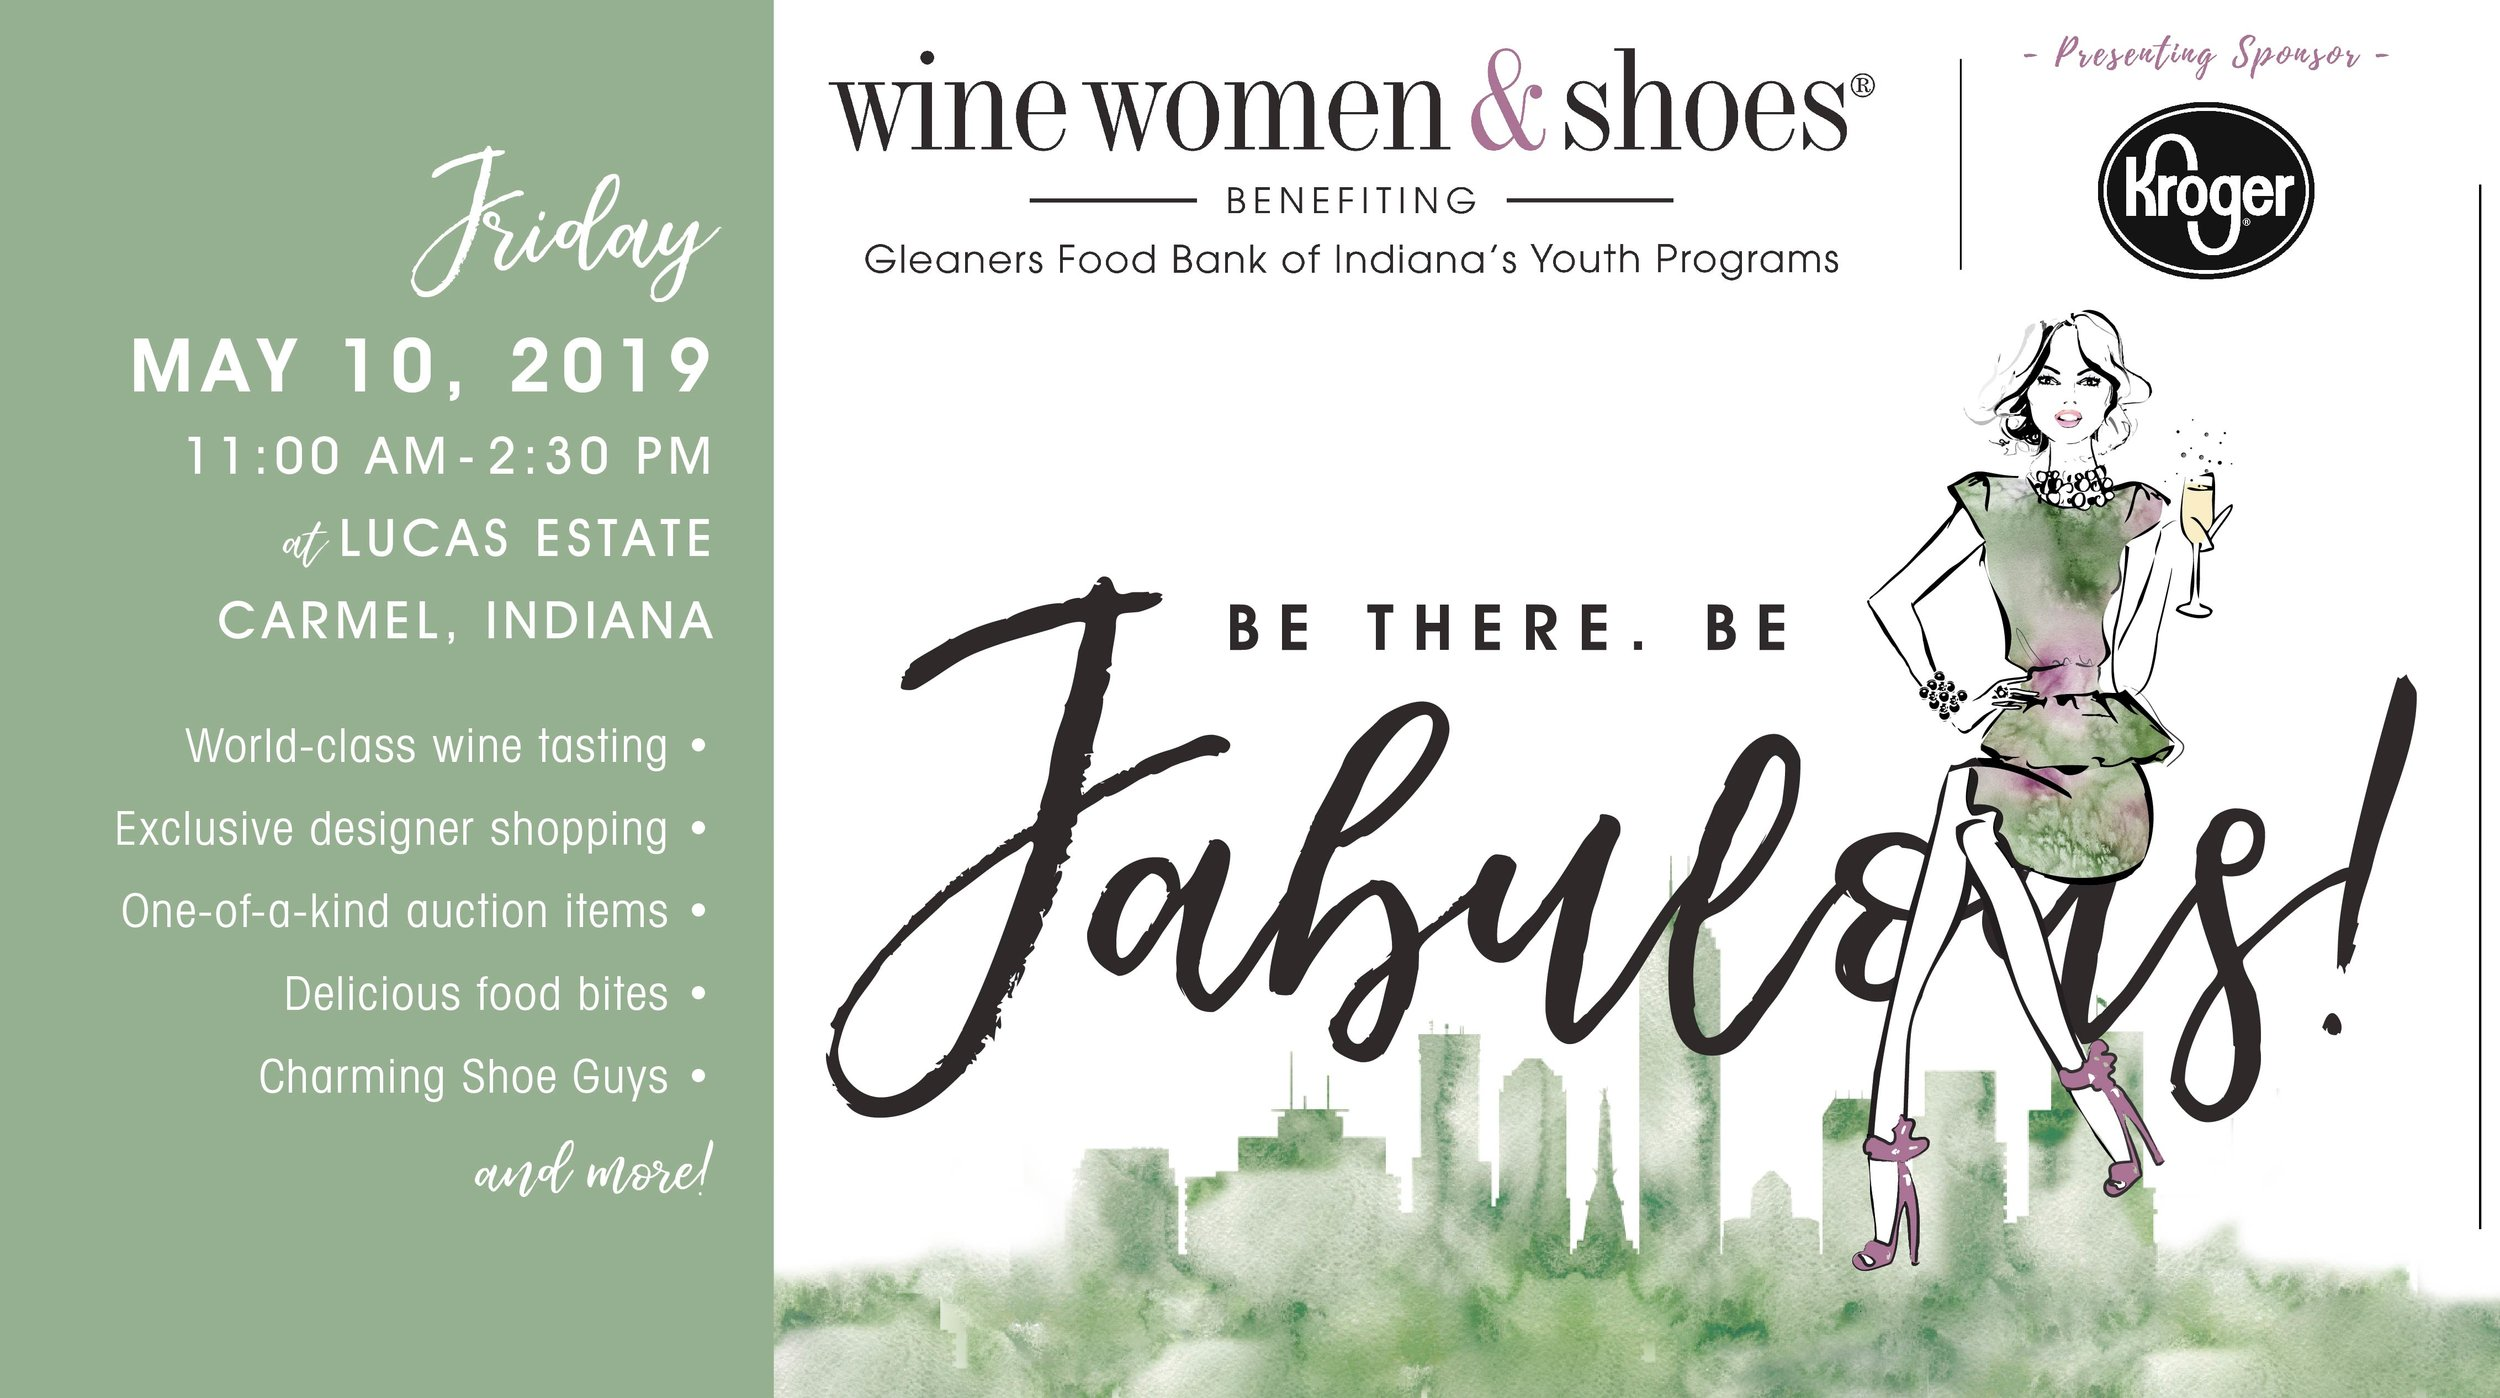 In the last decade, Wine Women & Shoes has exploded across the US producing more than 400 fashion fundraising events. This two-part signature event series creates an enhanced atmosphere of giving where community-minded, philanthropic women (and a few good men) gather to sip, shop, savor, and support a worthy cause in an exciting, chic and innovative way.  Come out and show your support Gleaners Food Bank of Indiana the largest food bank in Indiana. Dedicated to leading the fight against hunger, Gleaners provides food and critical grocery products to over 560 hunger relief agencies in central and southeastern Indiana.